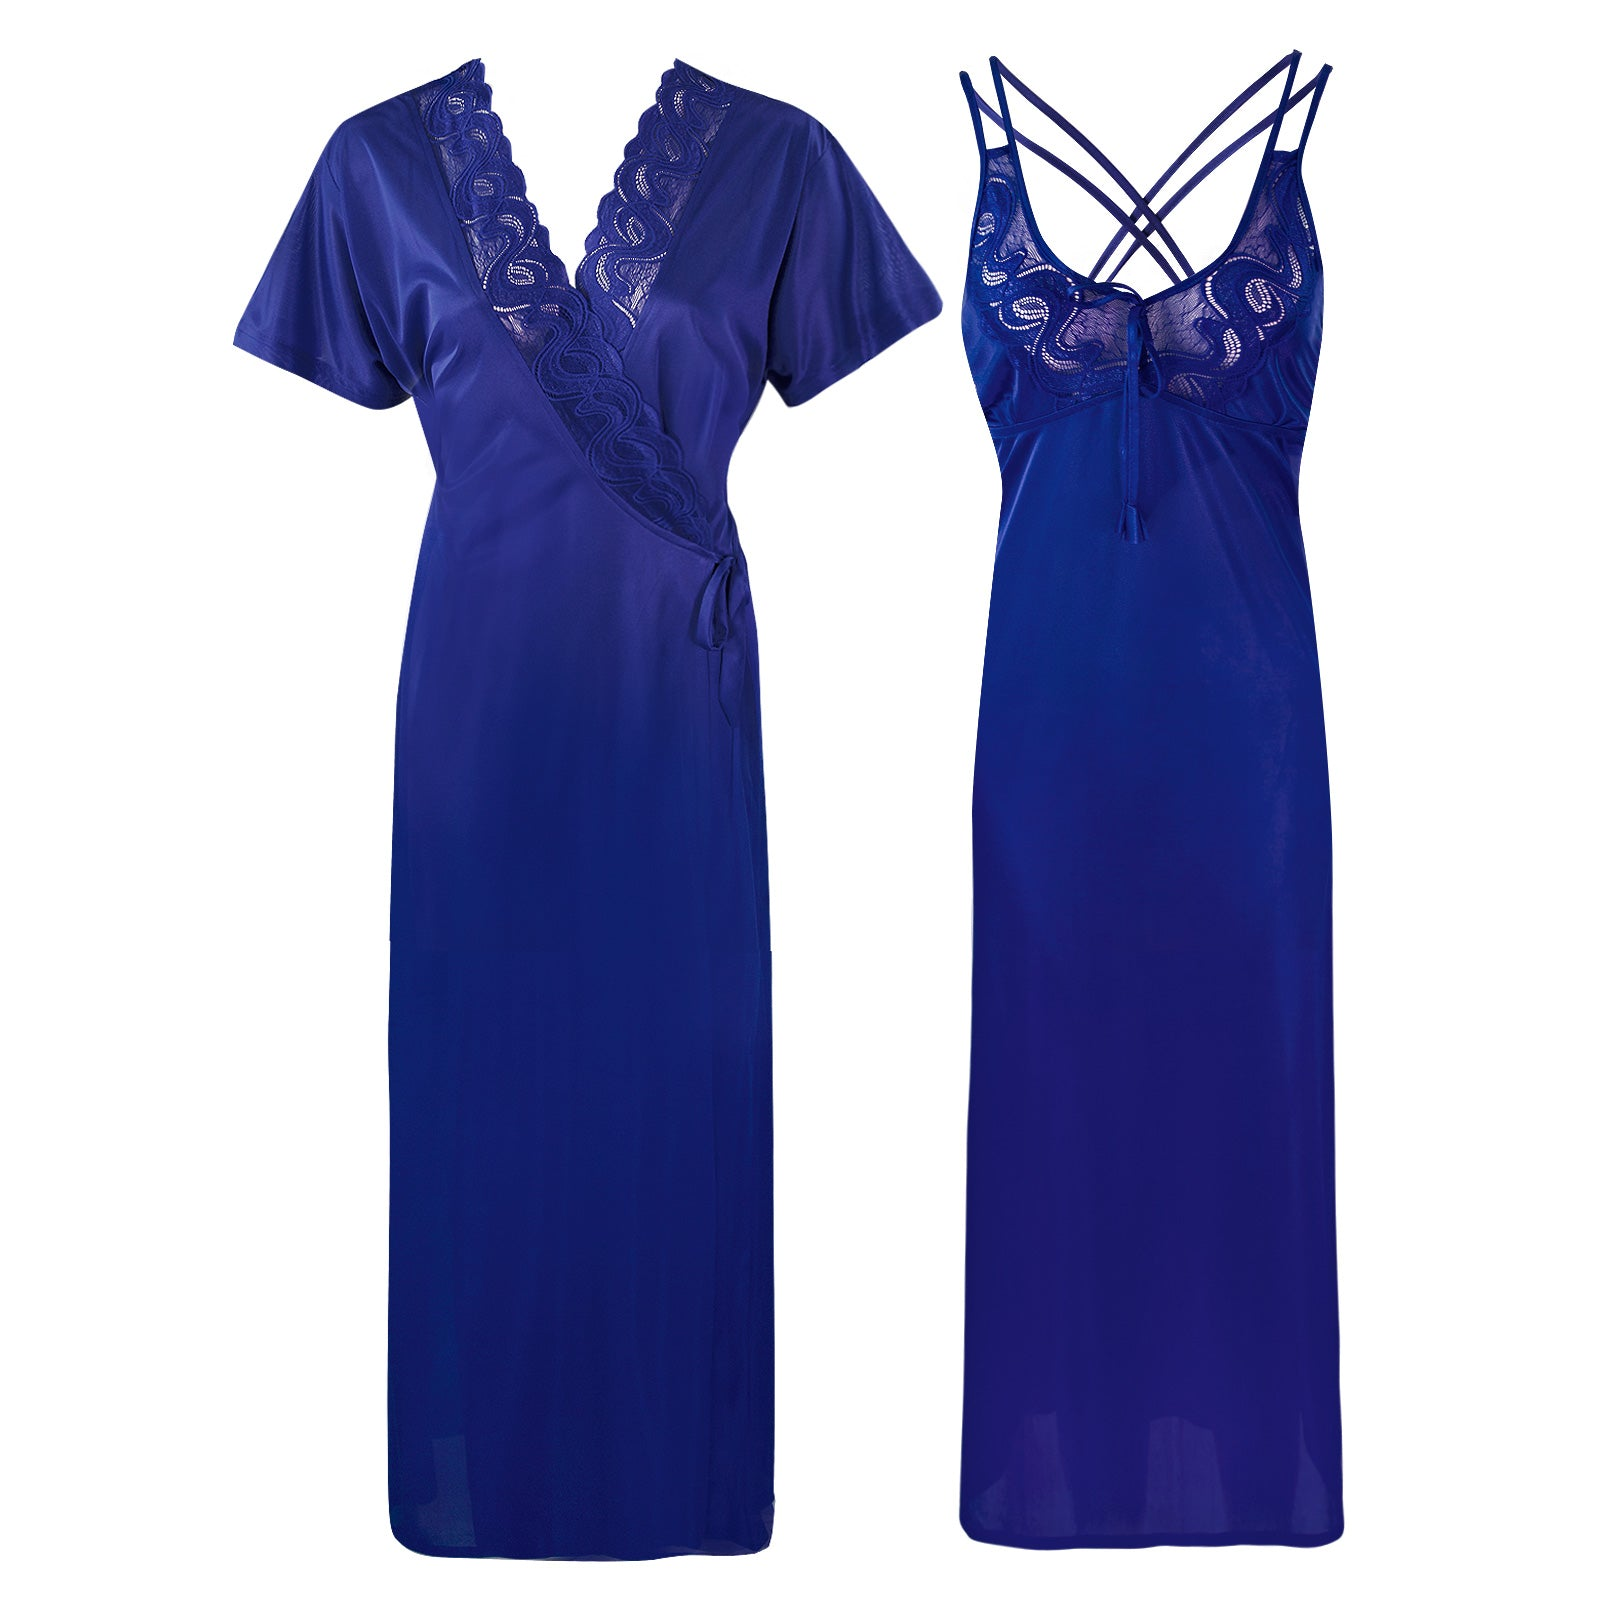 Womens Plus Size Nightdress 2 Pcs Set [colour]- Hautie UK, #Nightfashion | #Underfashion SIZE 16 18 20 BLUE